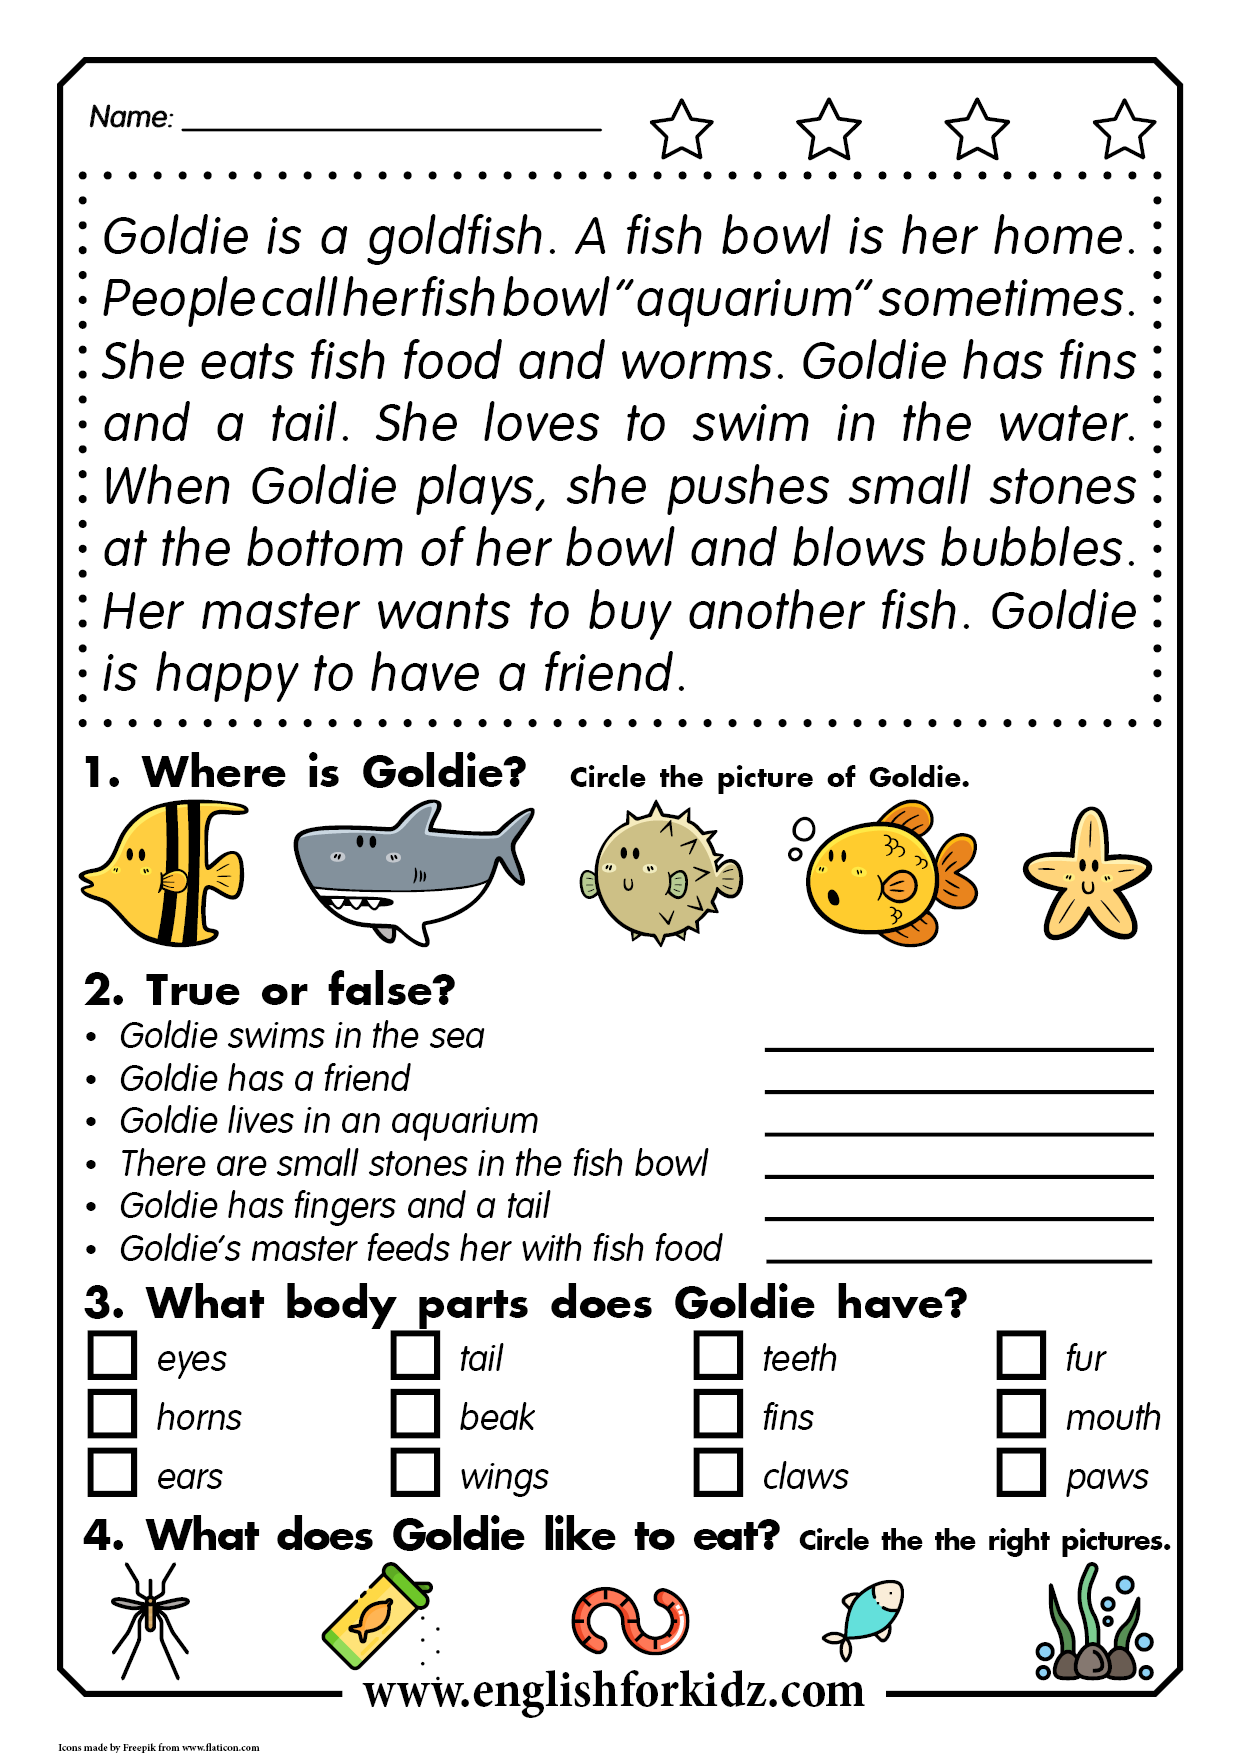 Reading comprehension activities   Reading comprehension worksheets [ 1754 x 1240 Pixel ]